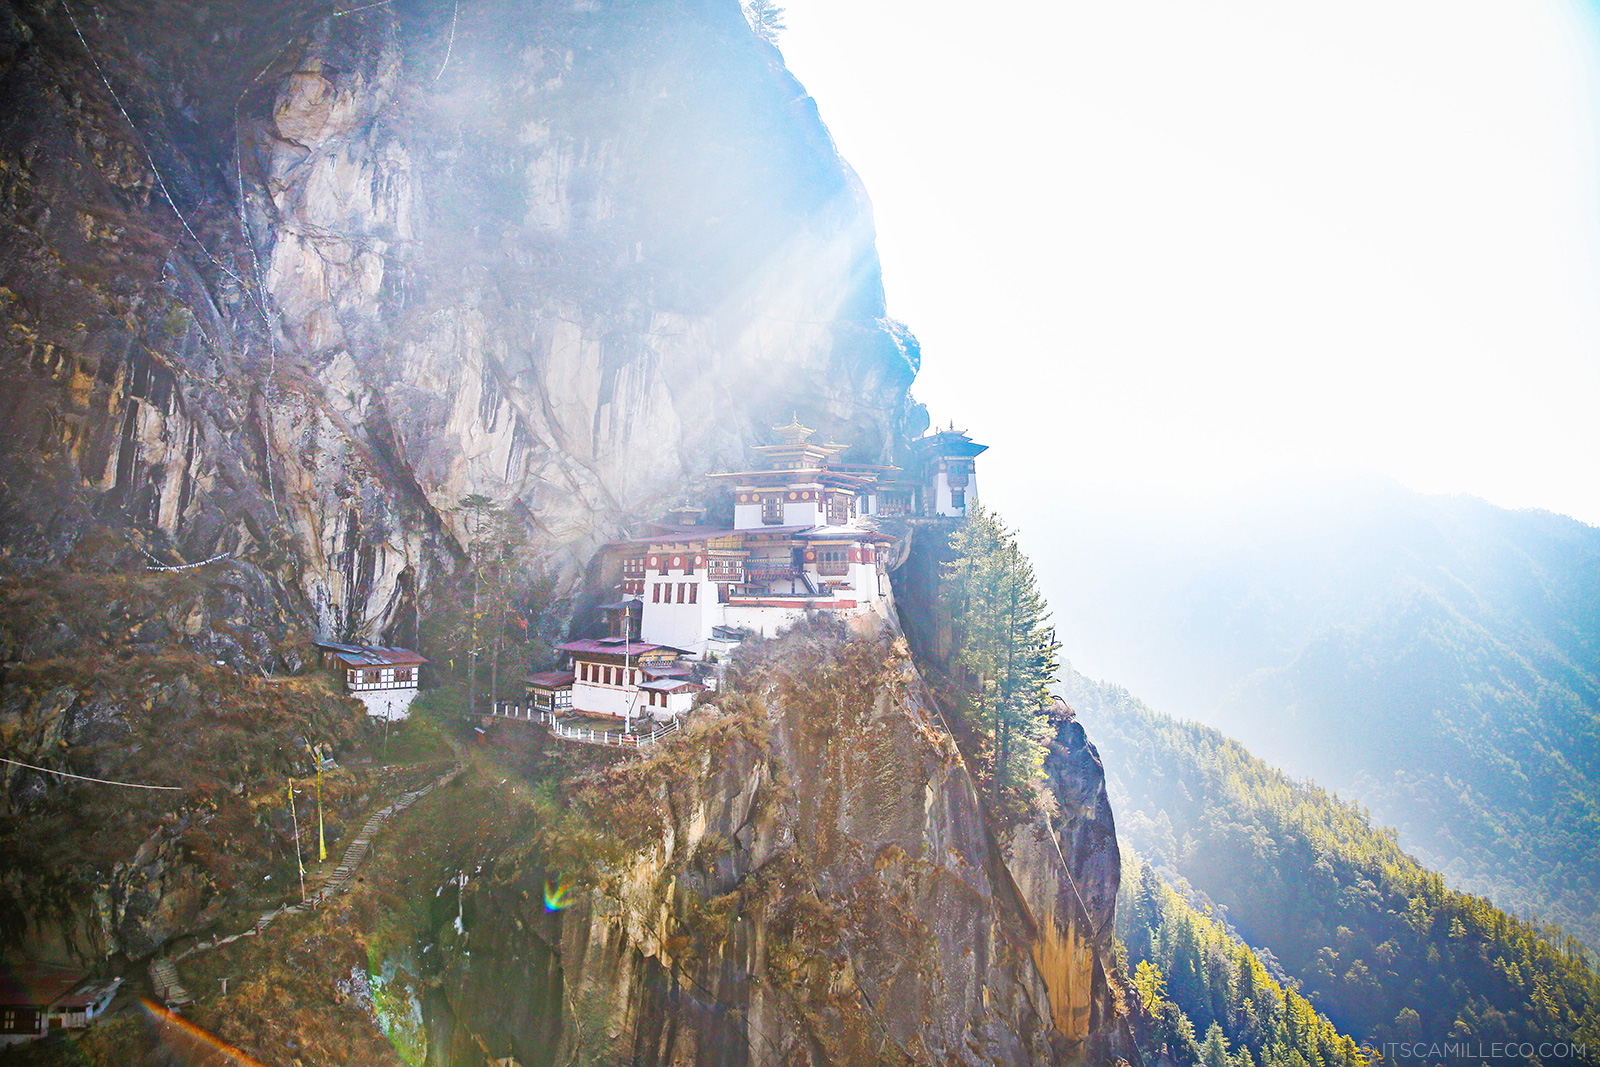 Tiger's Nest, Bhutan - Camille Co www.itscamilleco.com